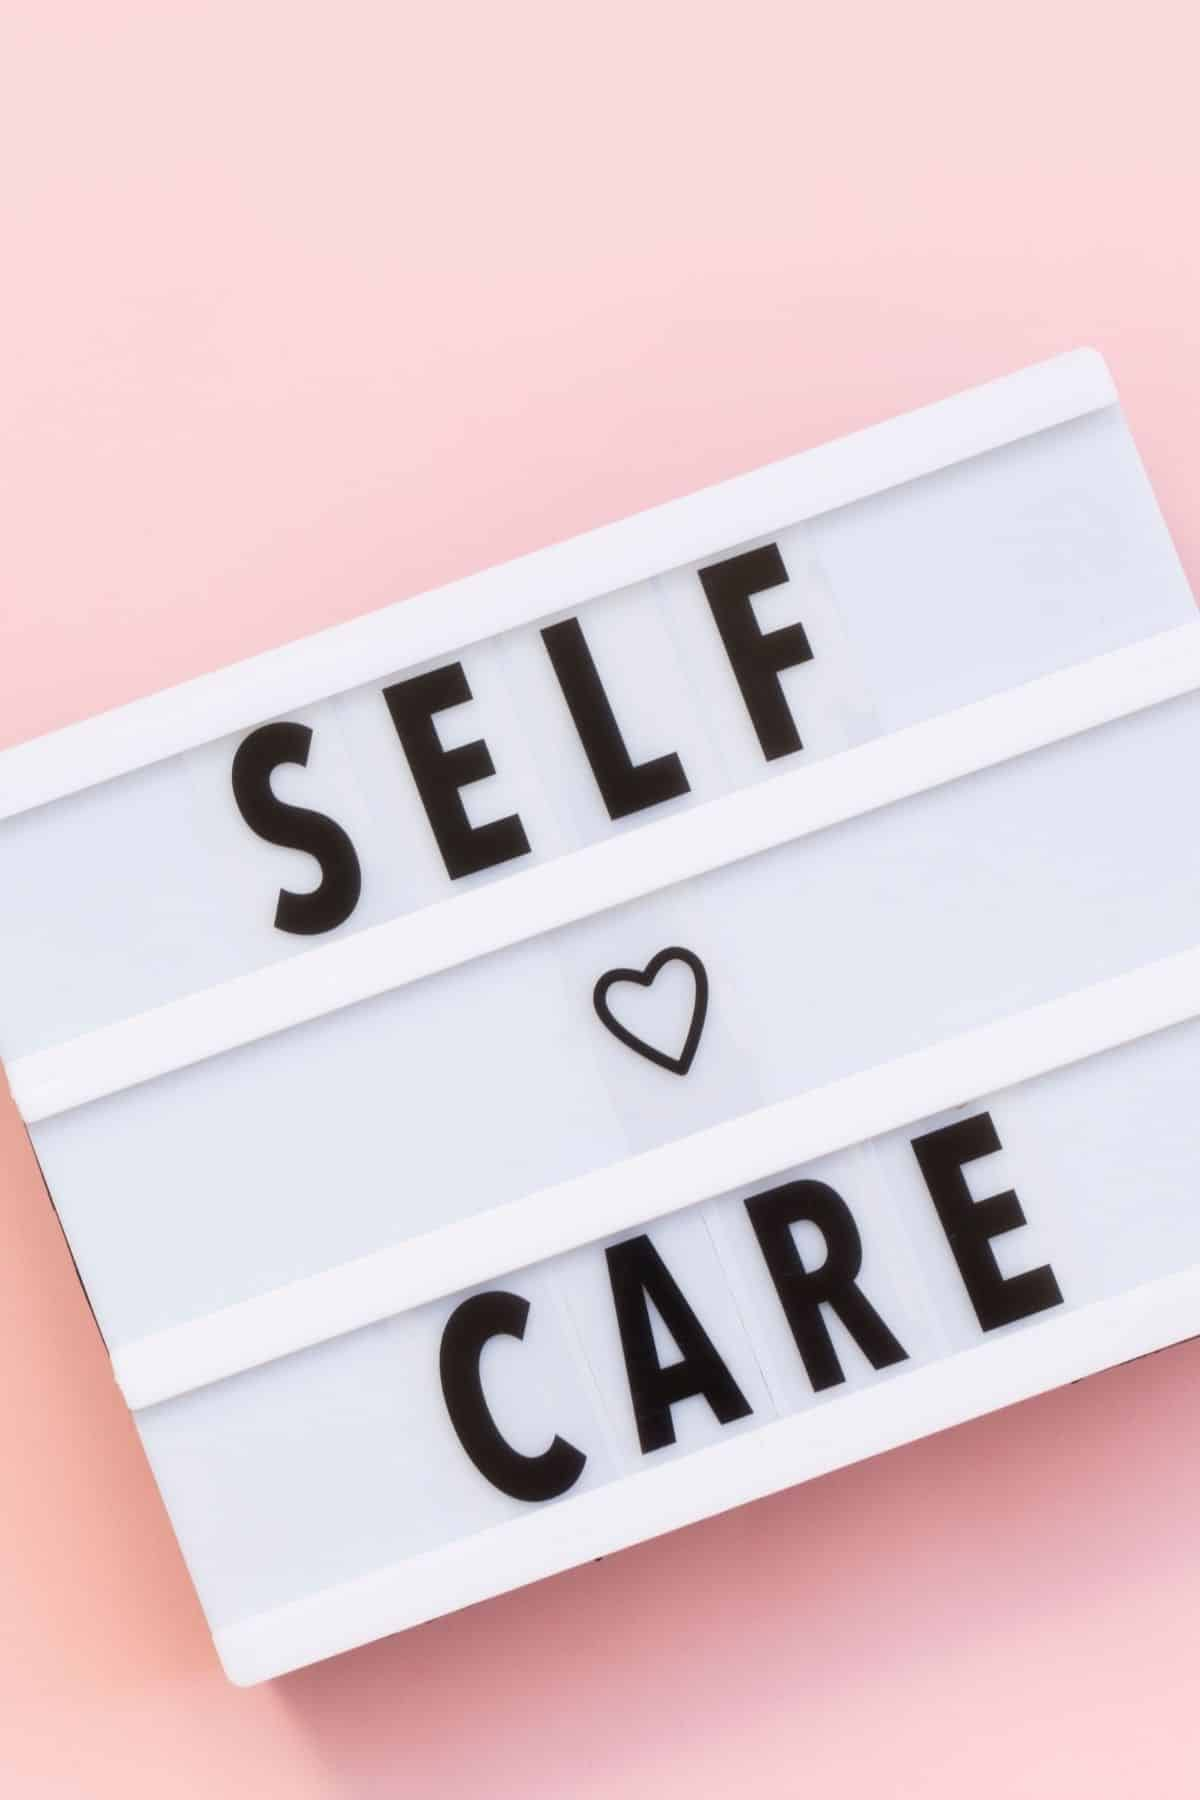 sign with self care in black letters